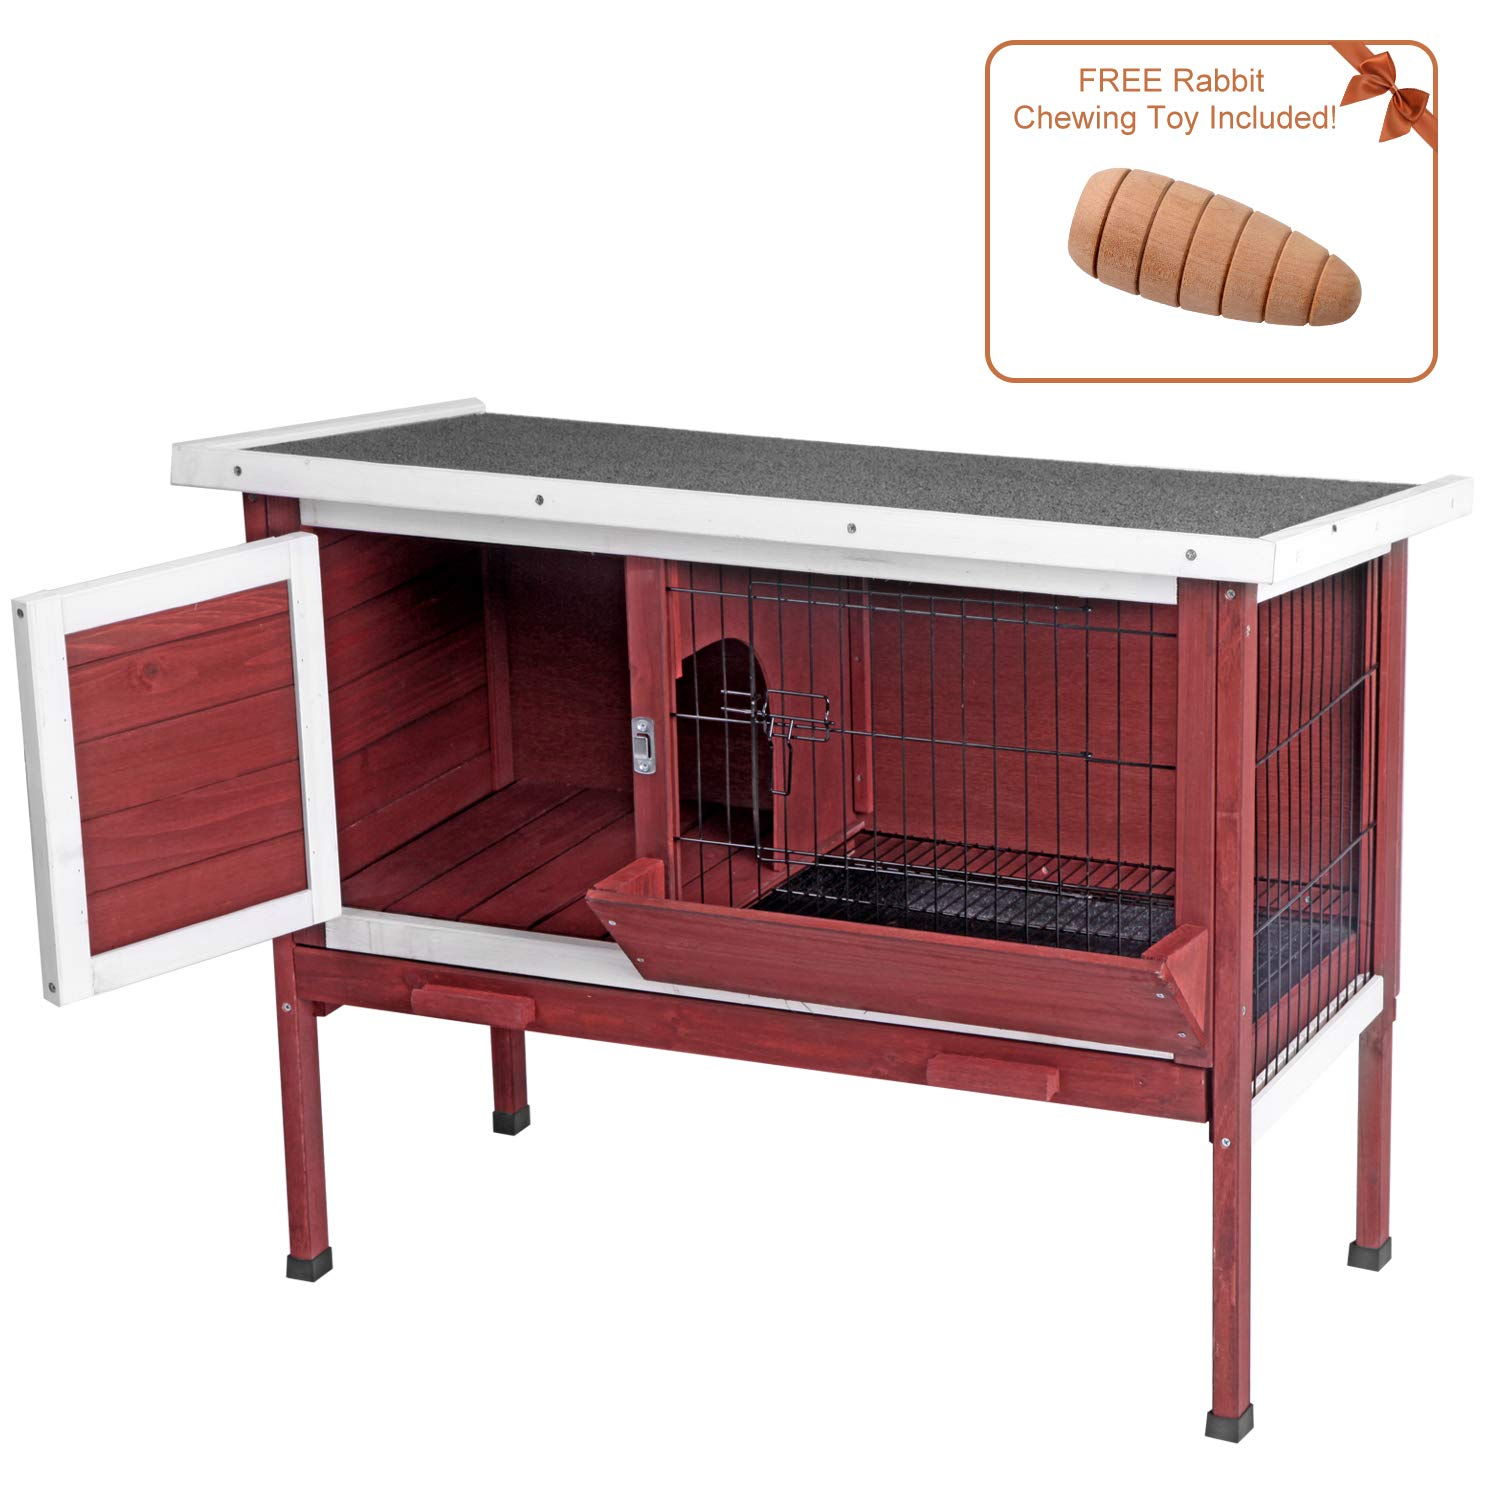 Aivituvin Outdoor Rabbit Hutch, Wooden Bunny Cages Indoor with Deeper Leakproof Tray - Upgrade with Metal Wire Pan (Aubur, Rabbit Hutch #001)